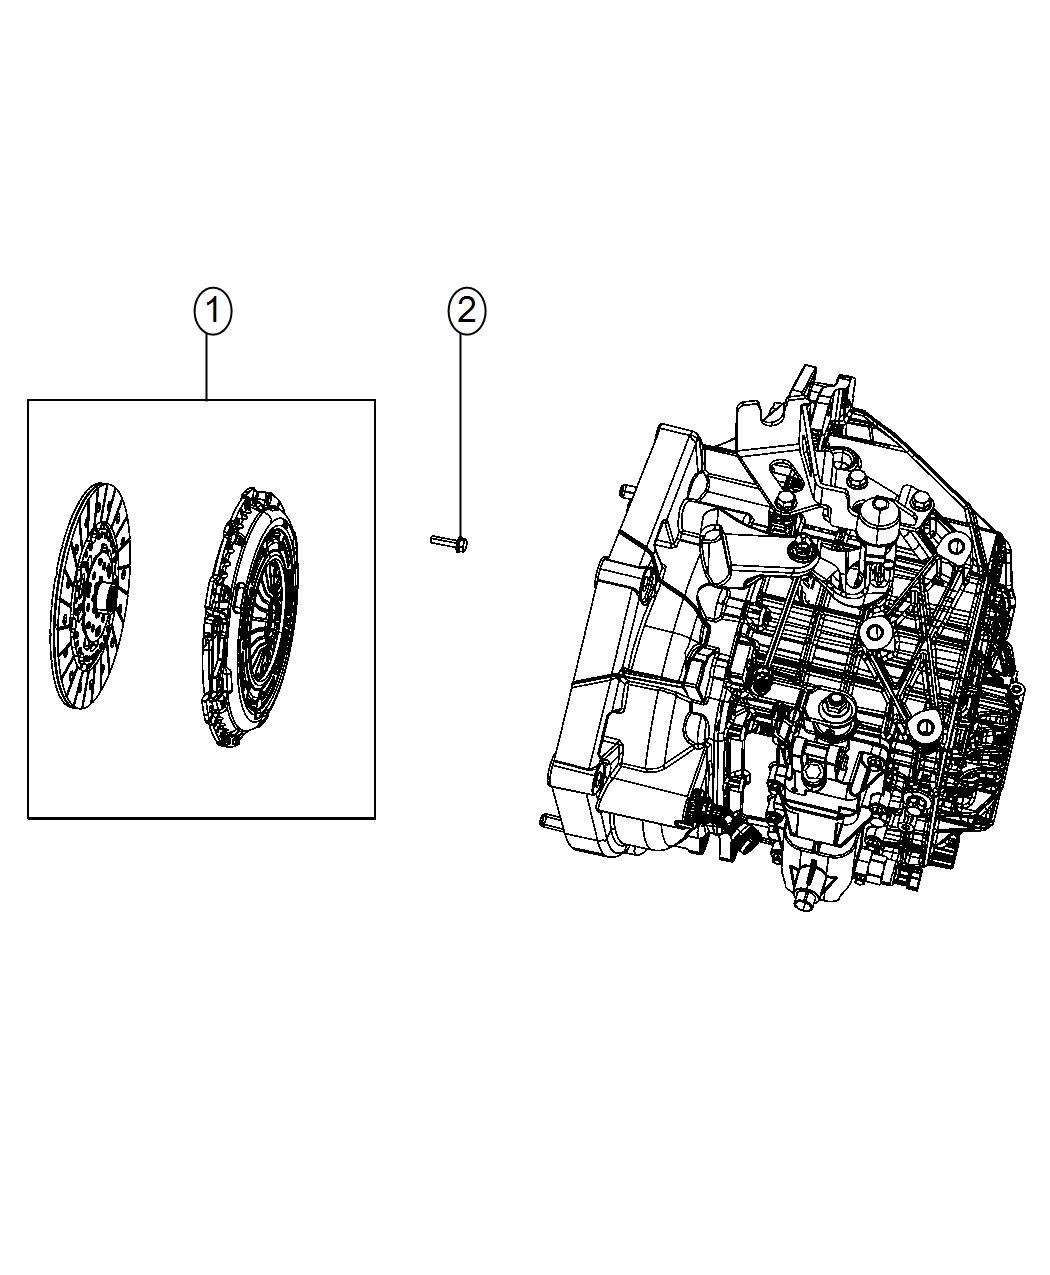 Dodge Dart Clutch kit. Used for: pressure plate and disc